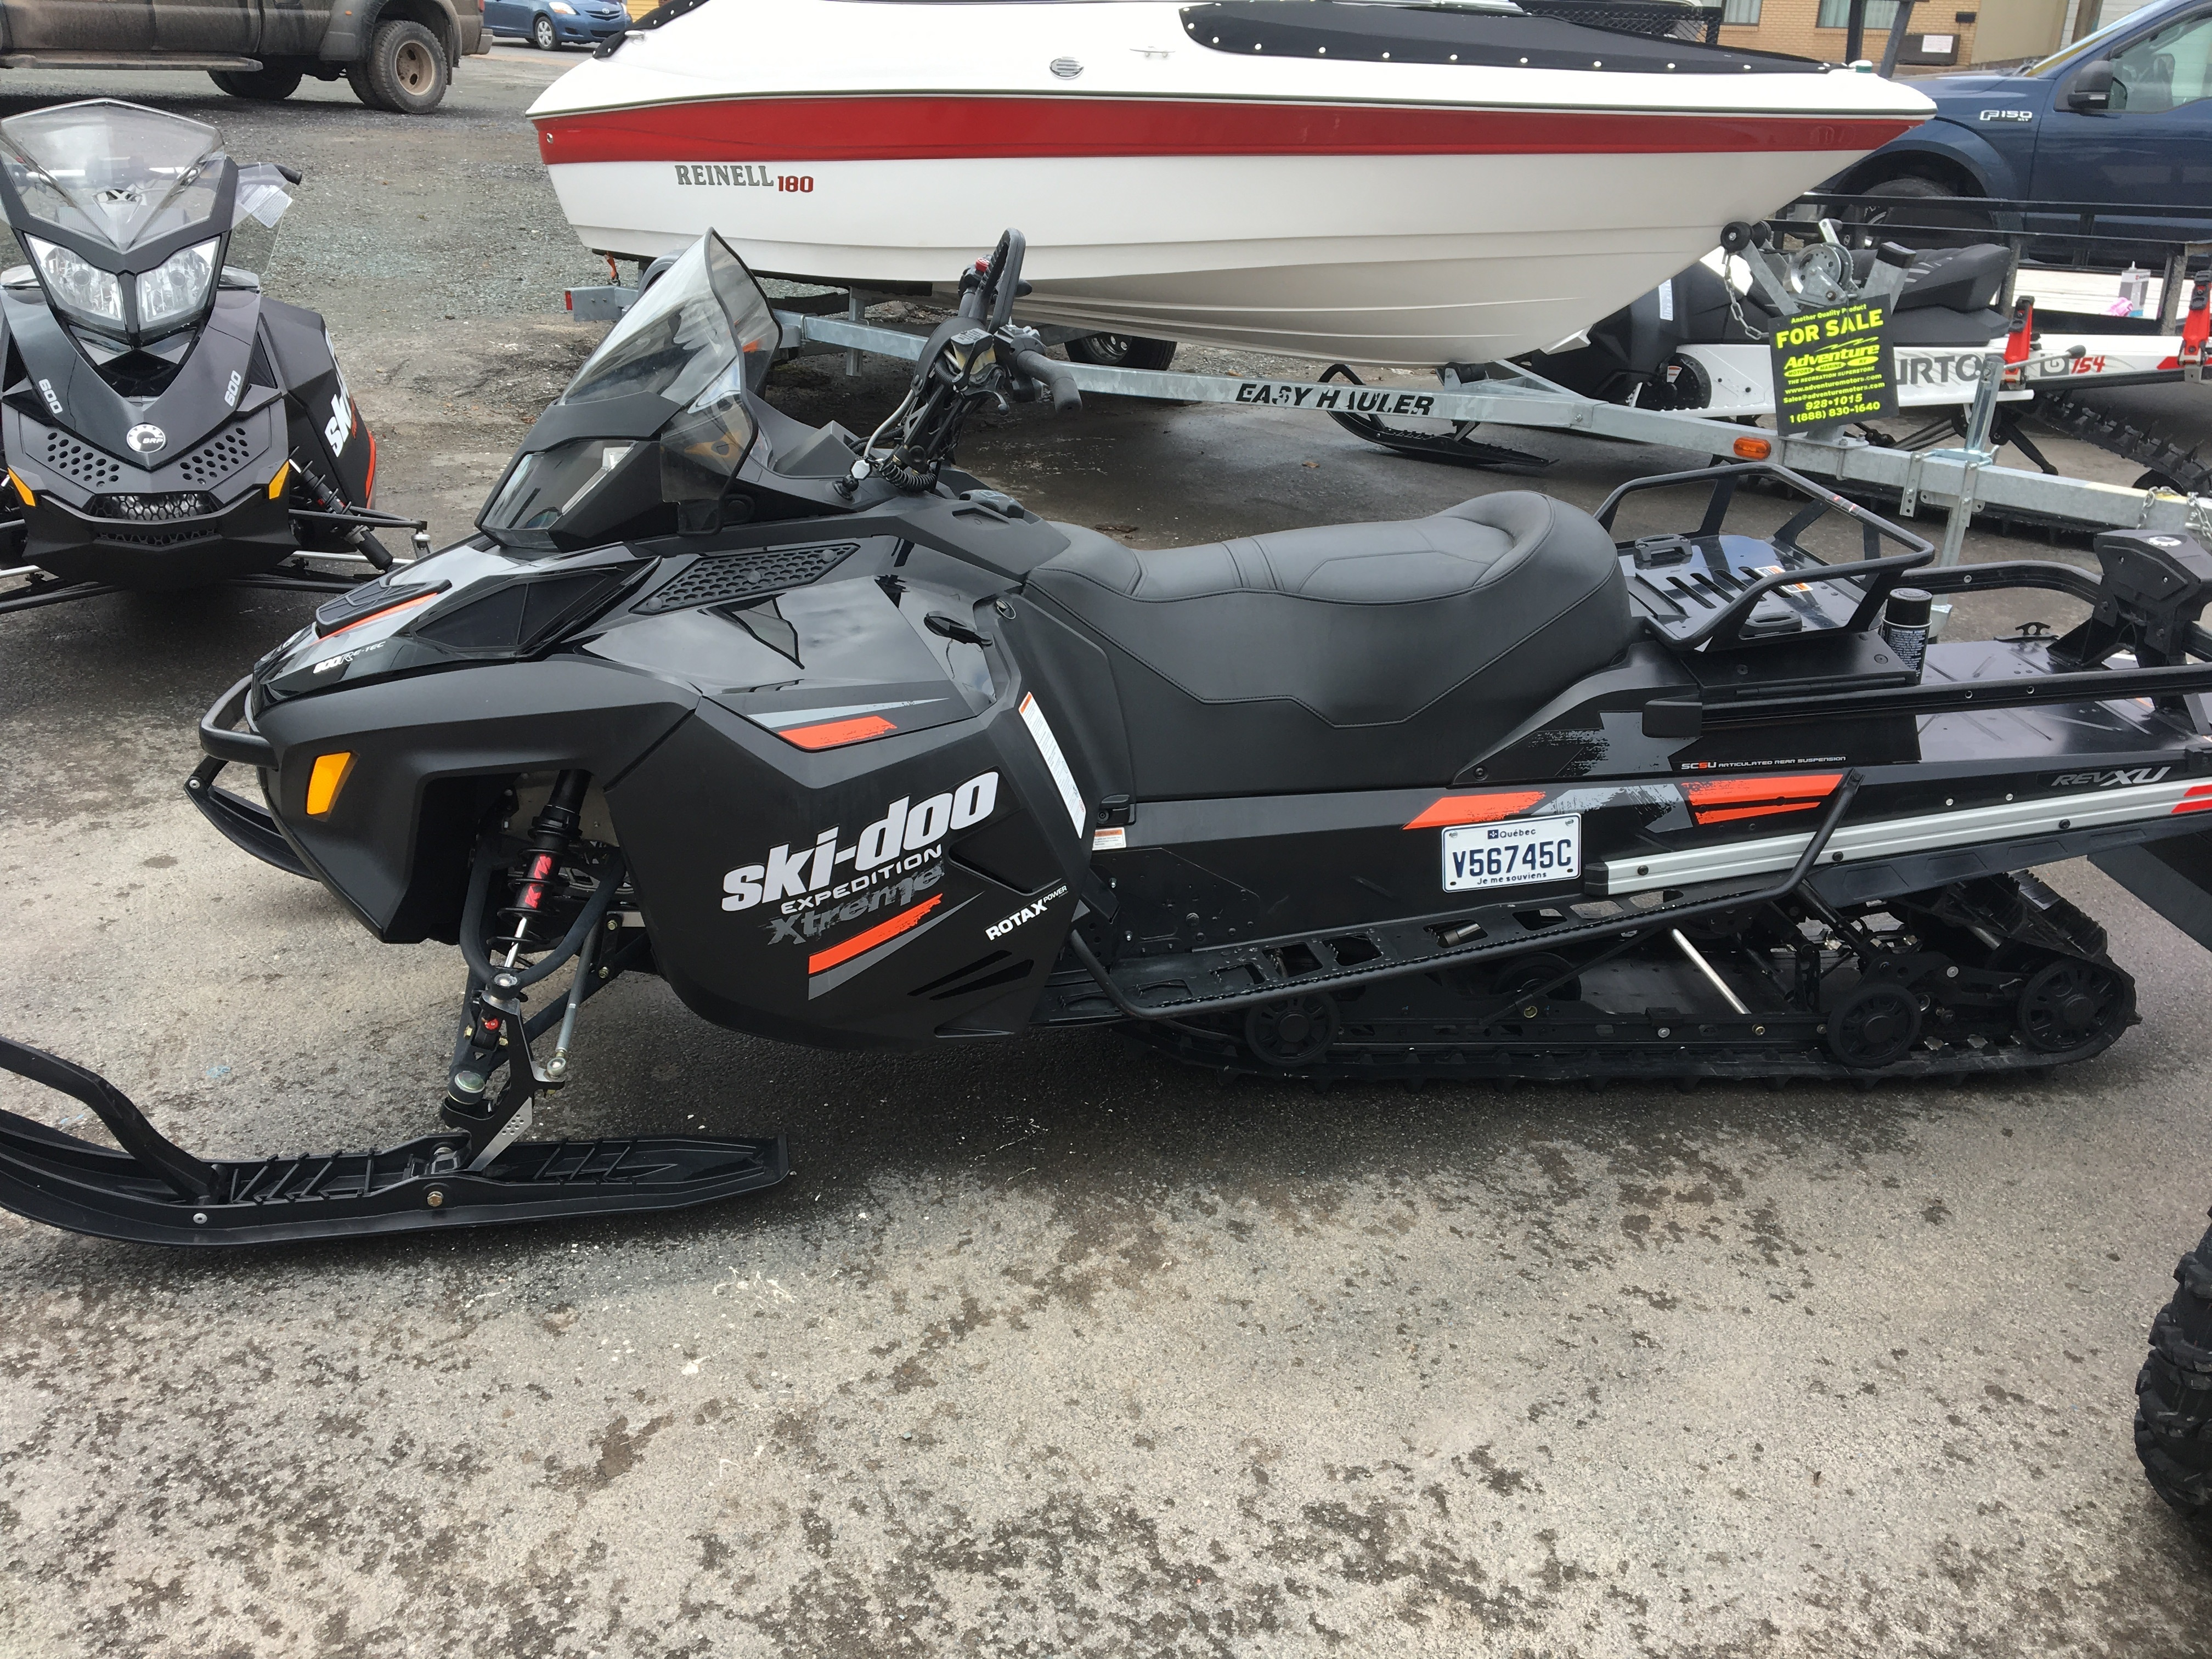 2015 SKI-DOO Expedition Extreme 800 SOLD